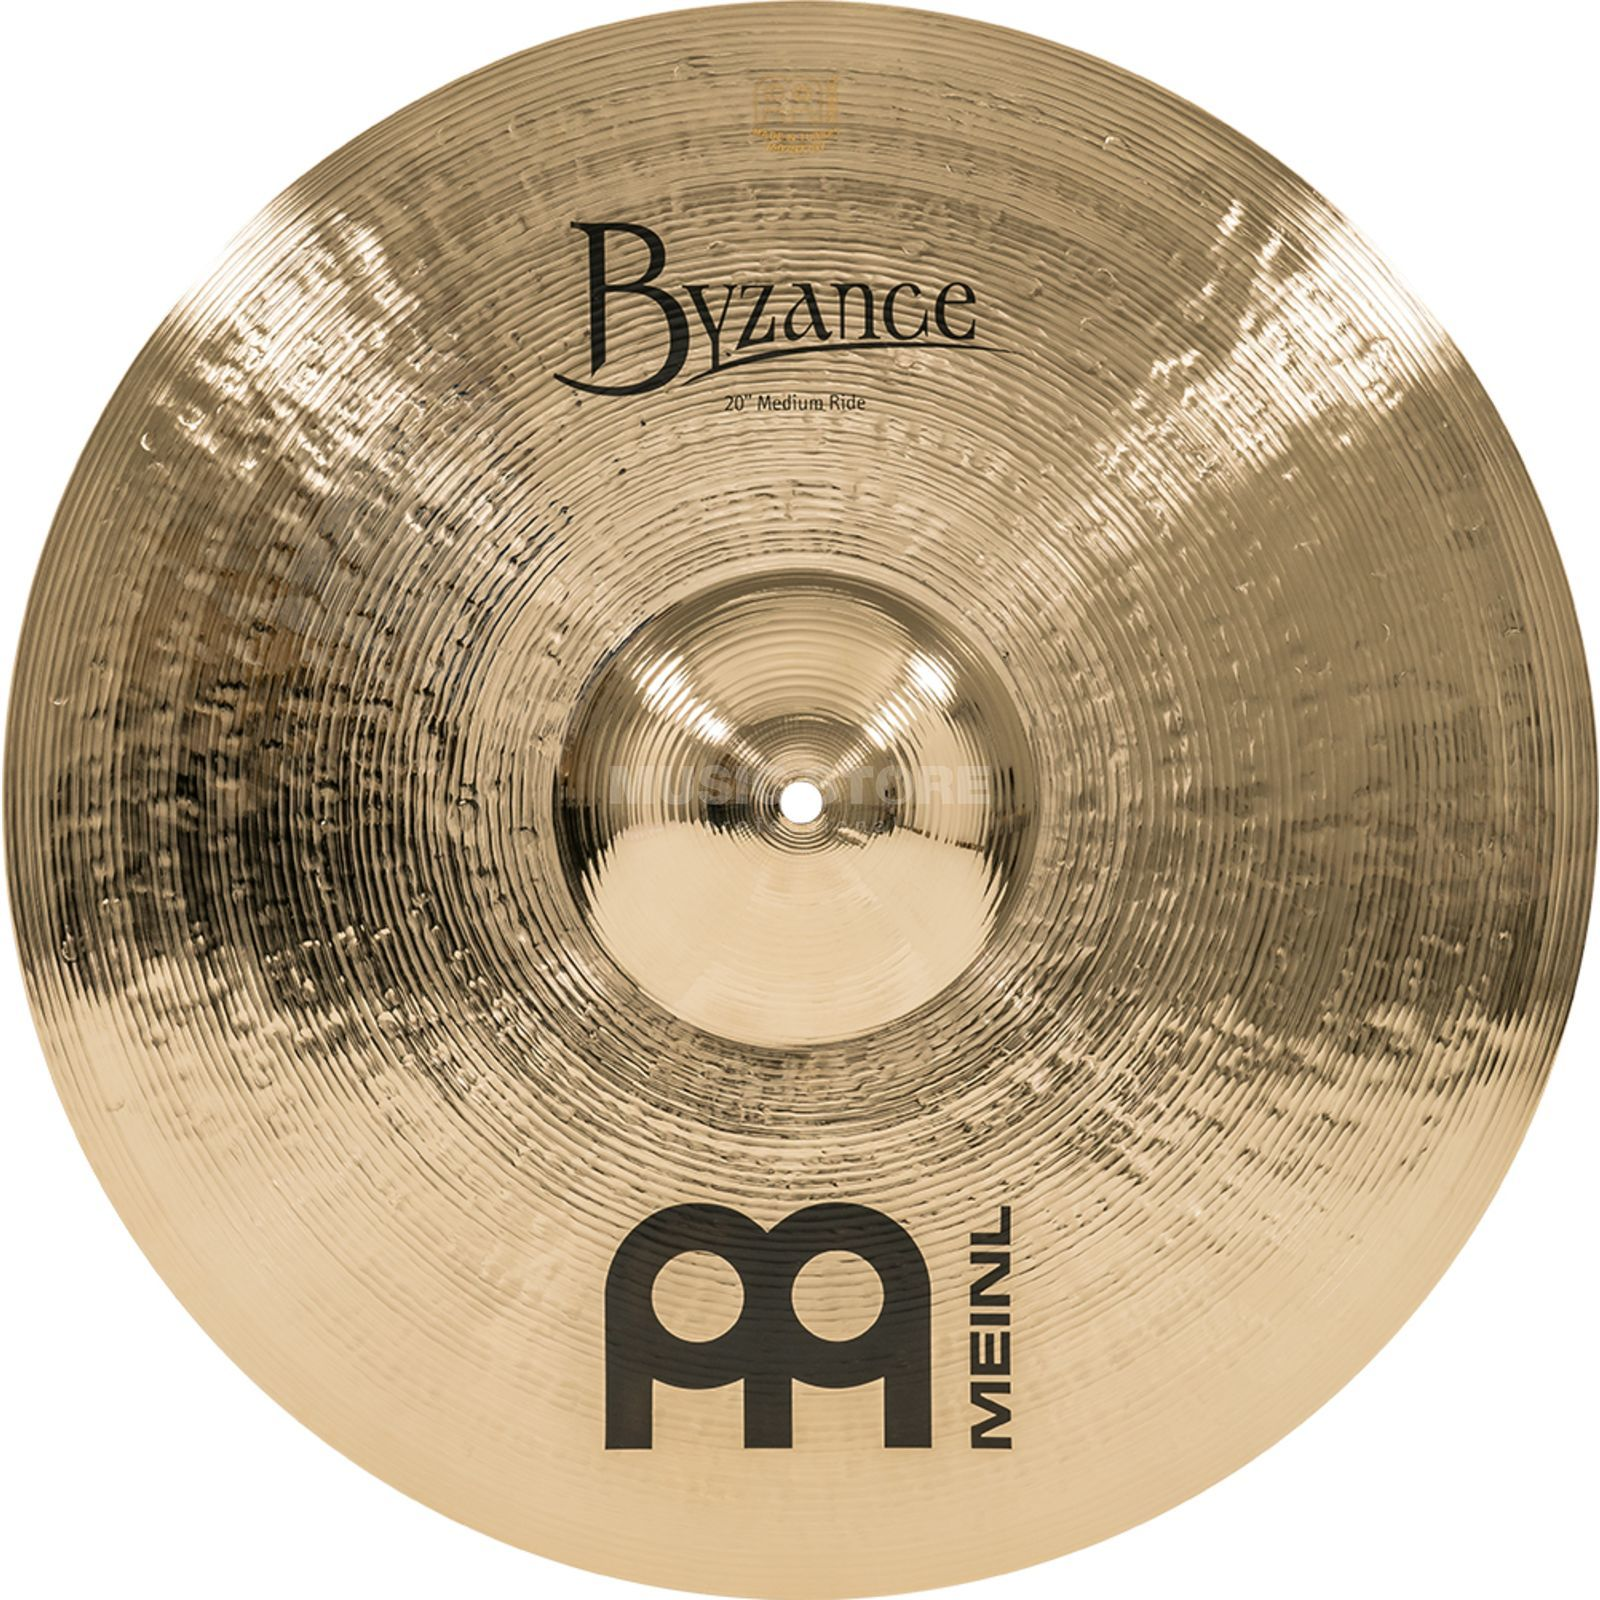 "Meinl Byzance Medium Ride 20"" B20MR-B, Brilliant Finish Product Image"